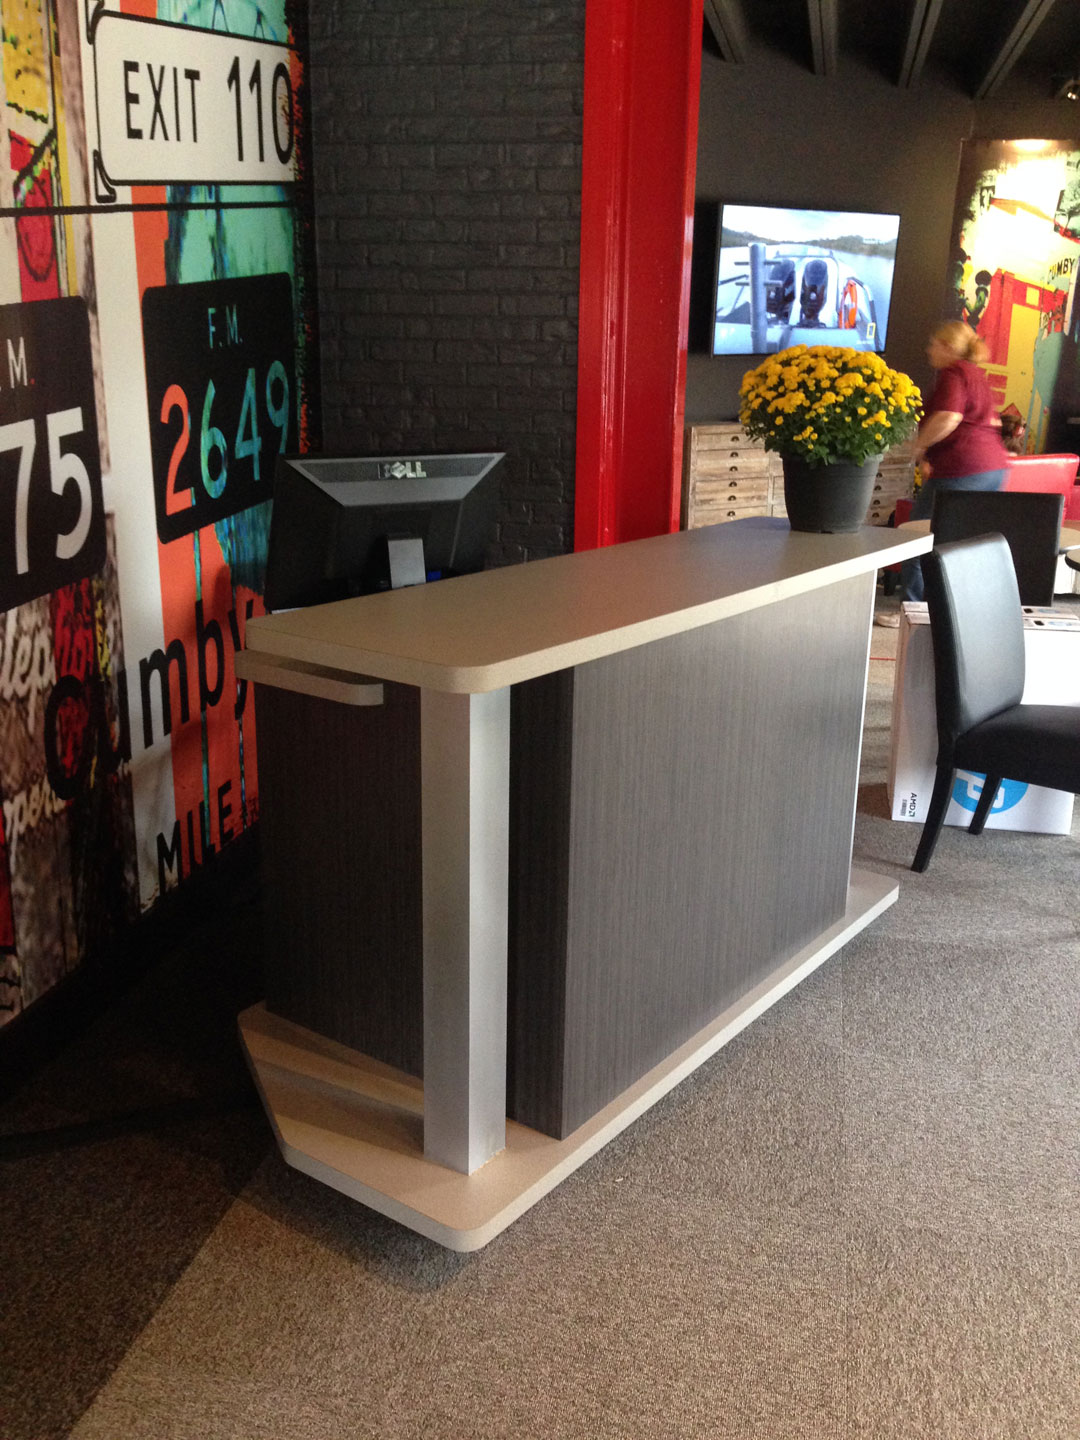 6 Foot X 33 Inch X 42 Inch Rolling Dual Level Reception